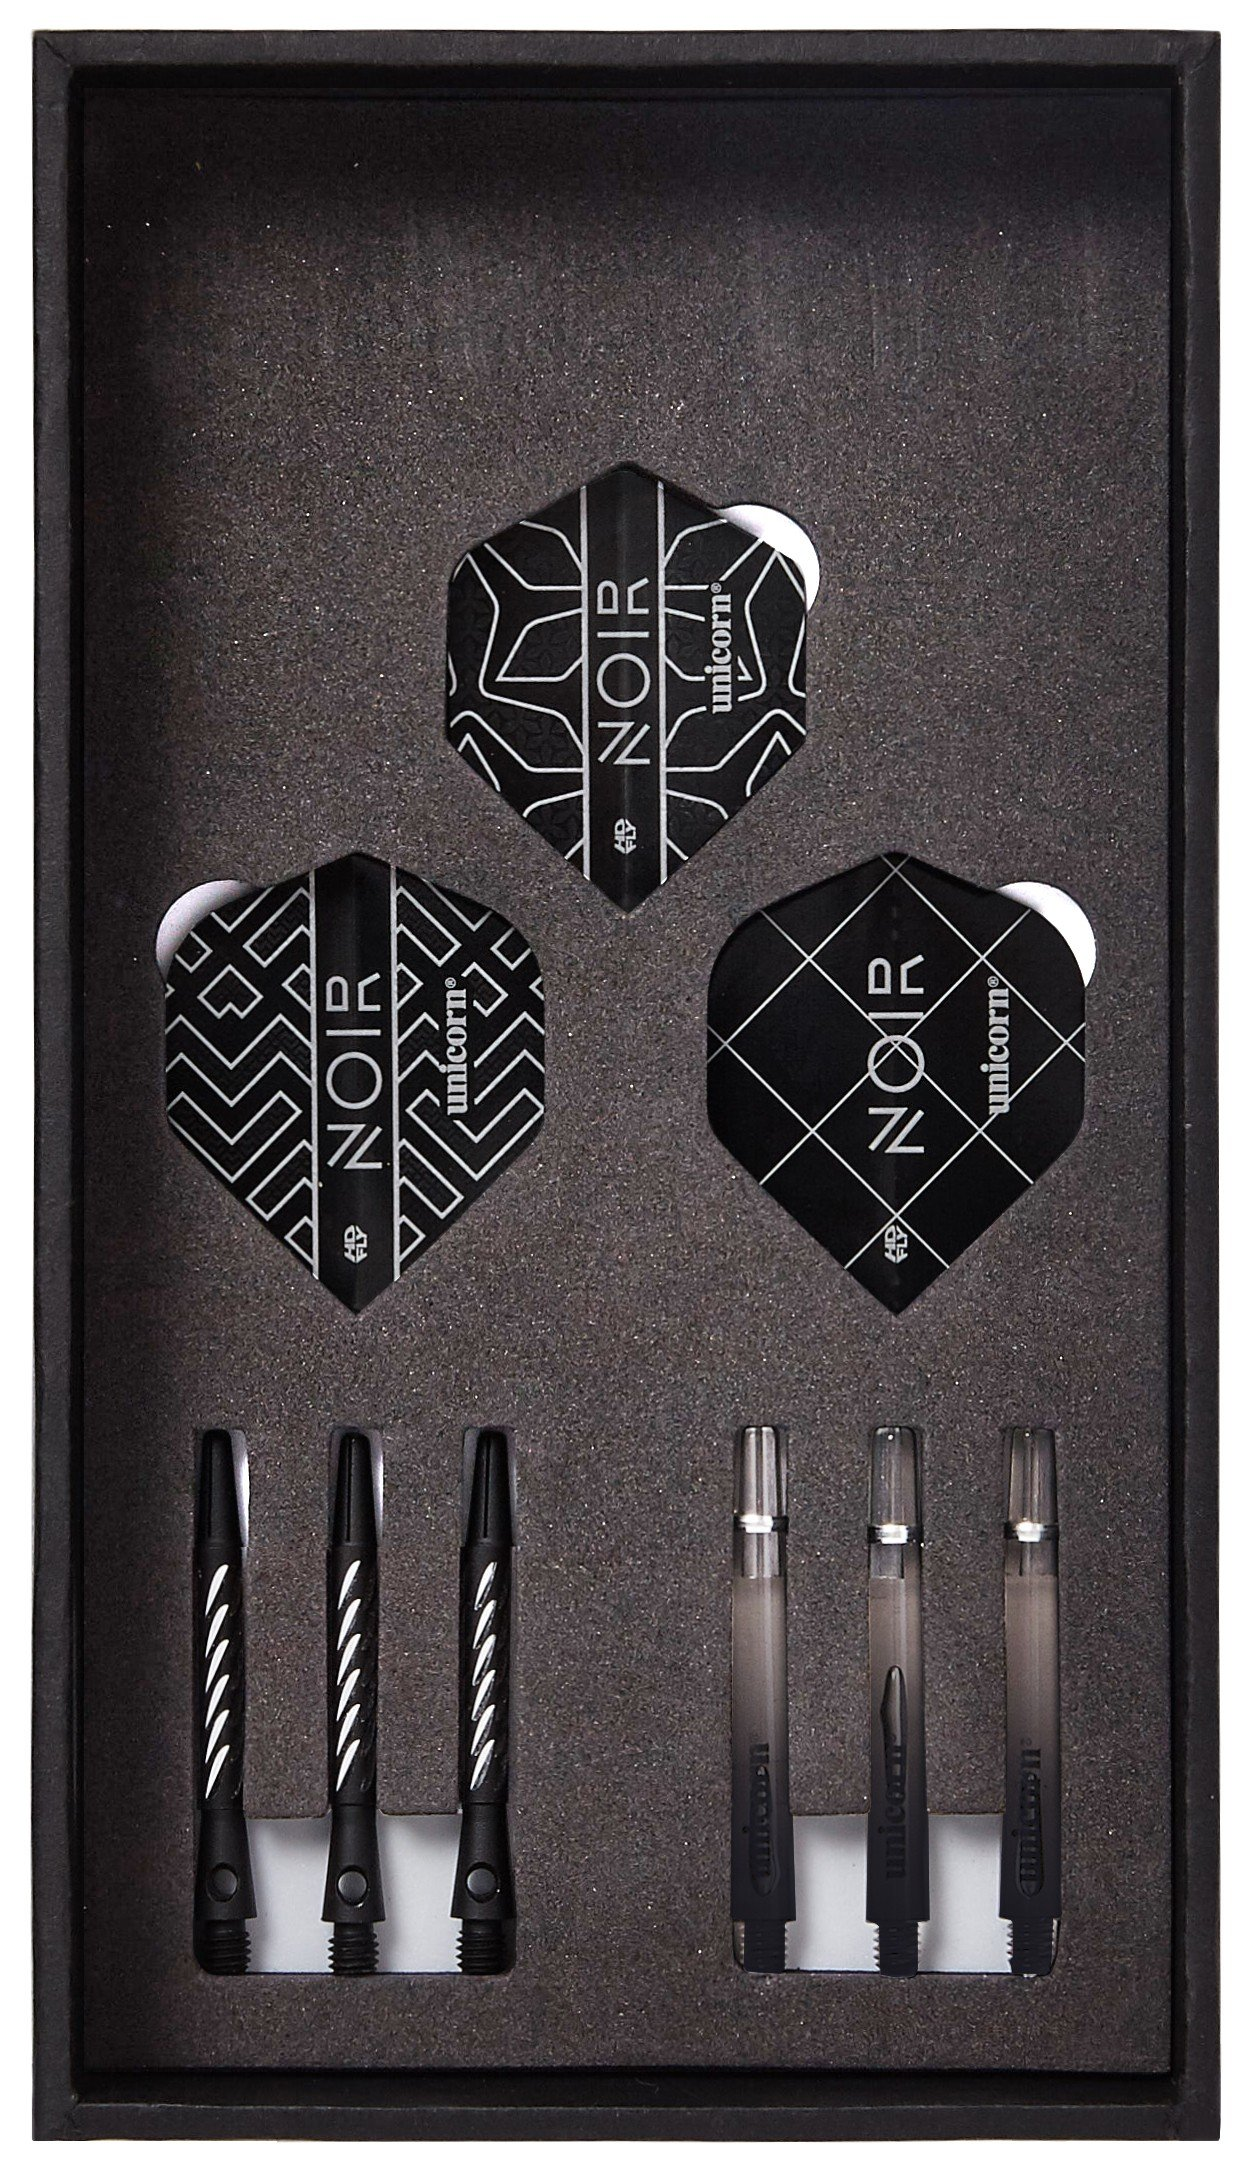 Unicorn Michael Smith 22G Noir 90% Tungsten Darts